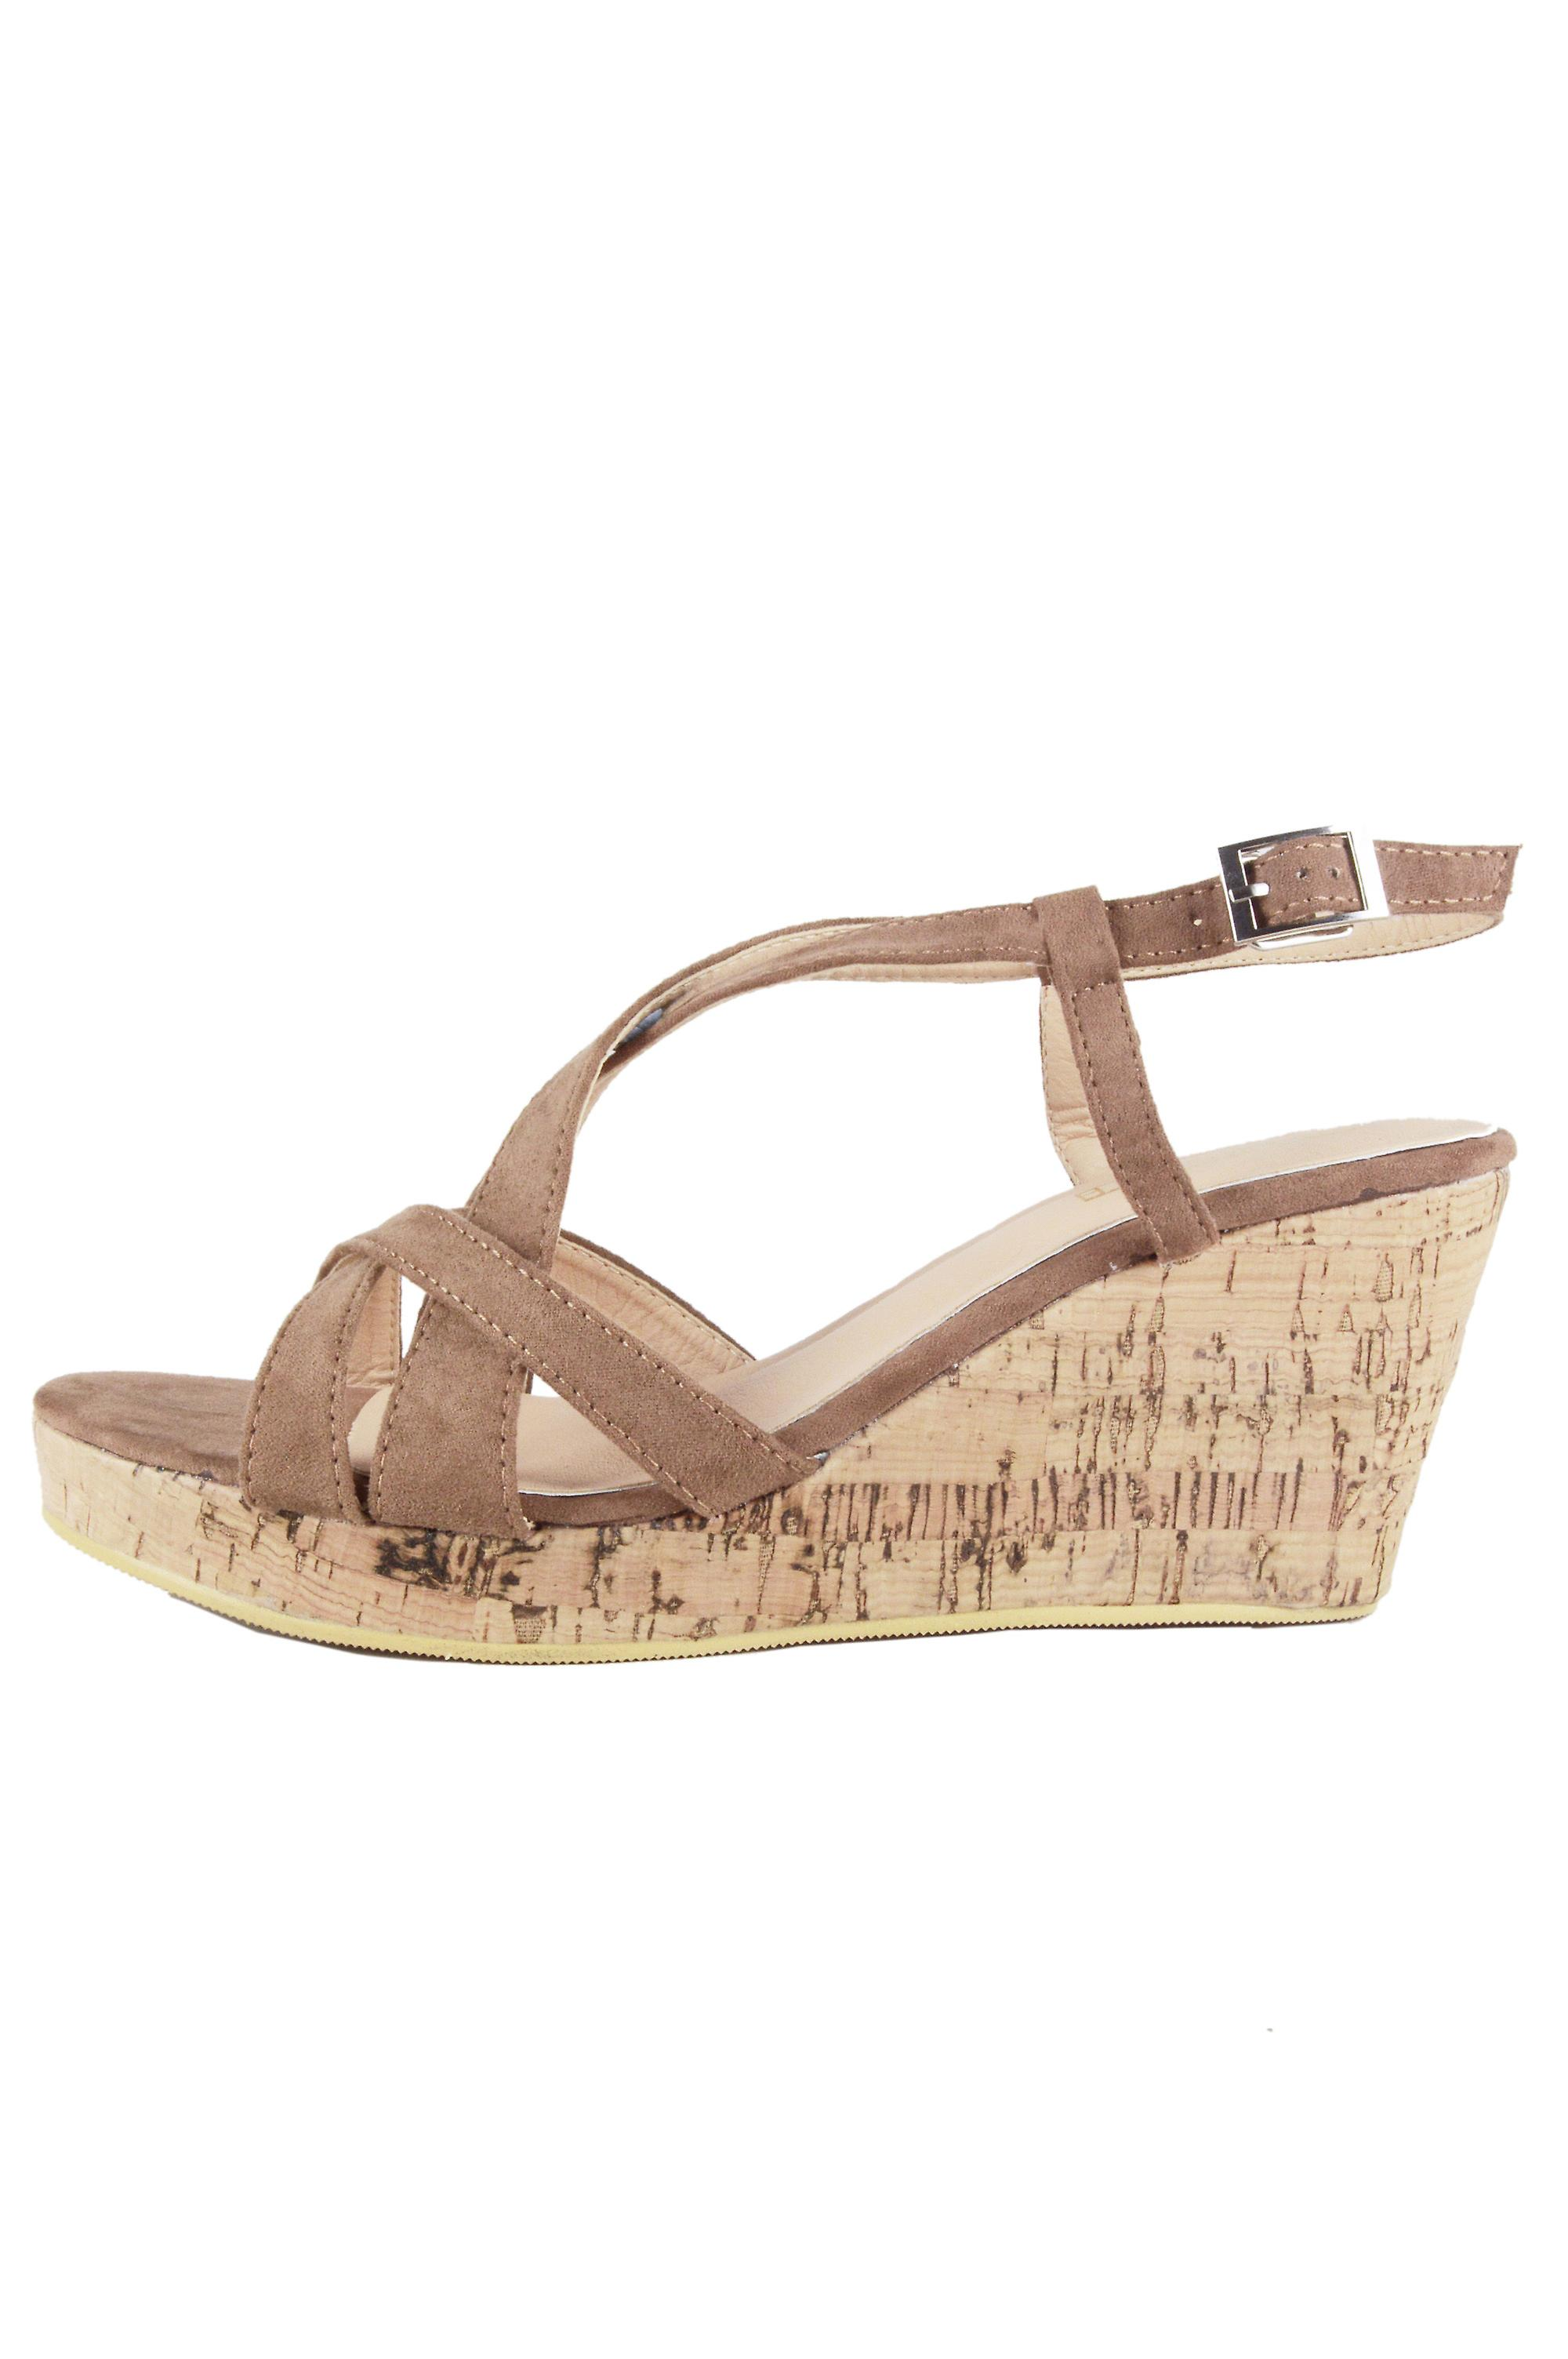 Lovemystyle Cork Wedges With Brown Suede Straps